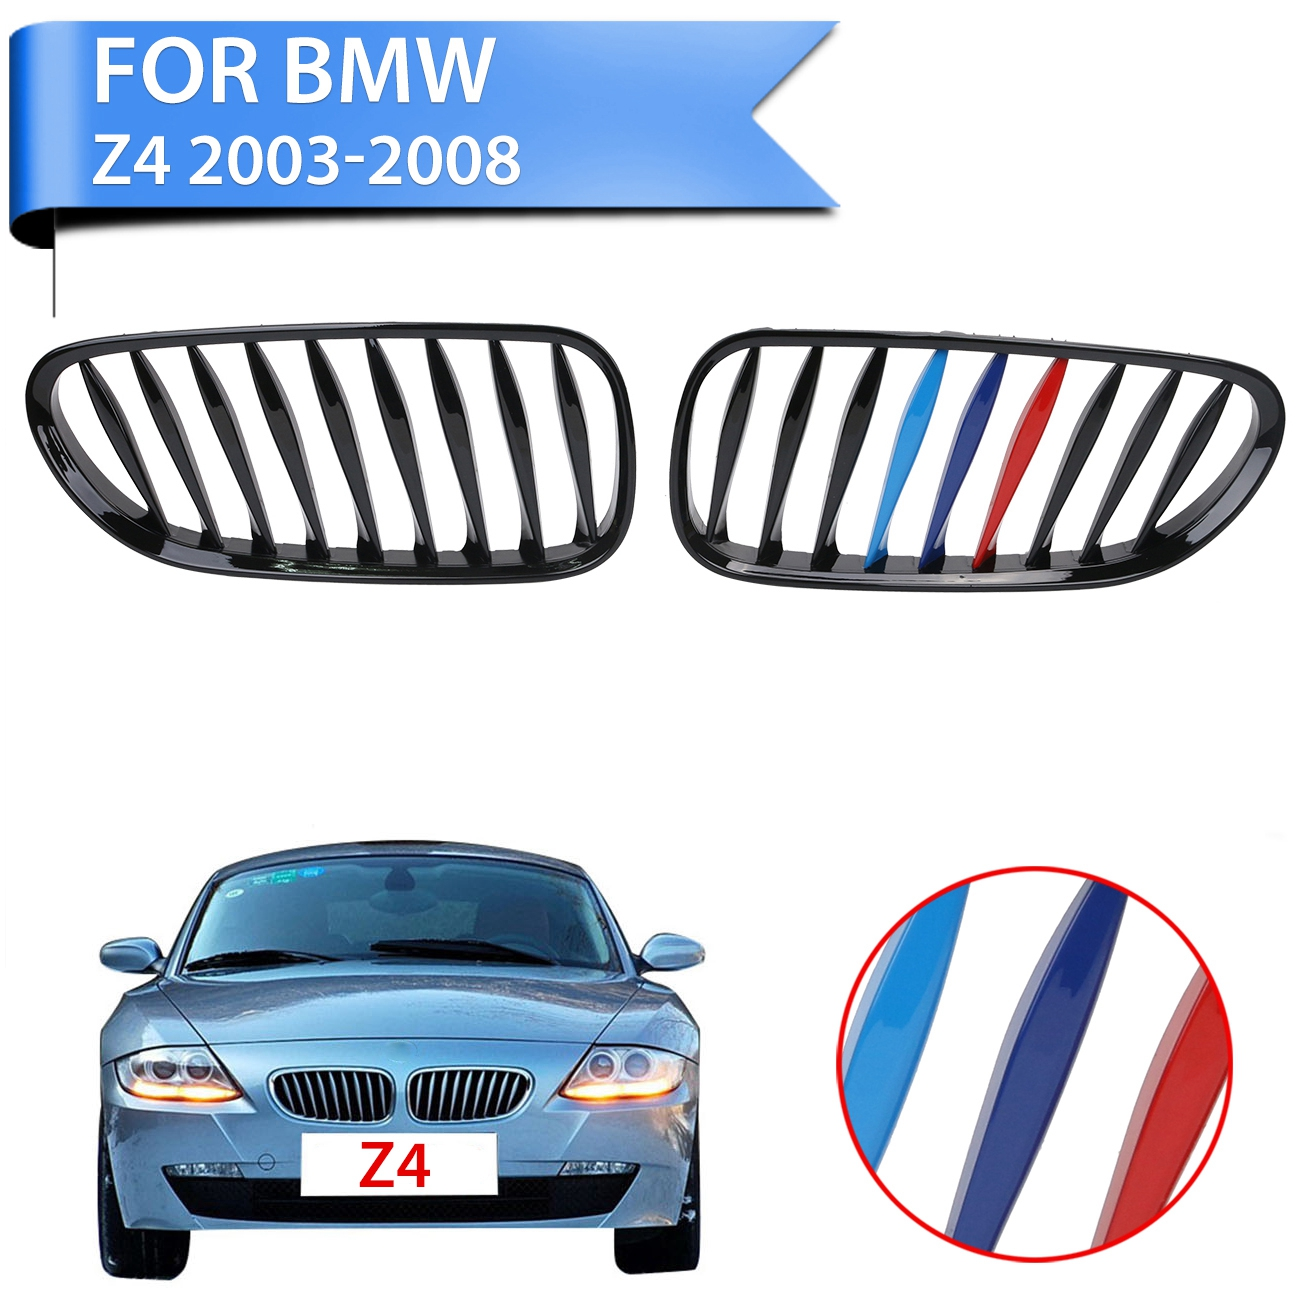 Front Grille Kidney Shape Grill For BMW E85 E86 Z4 2003-2008 Convertible CoupeCar Styling .#P361